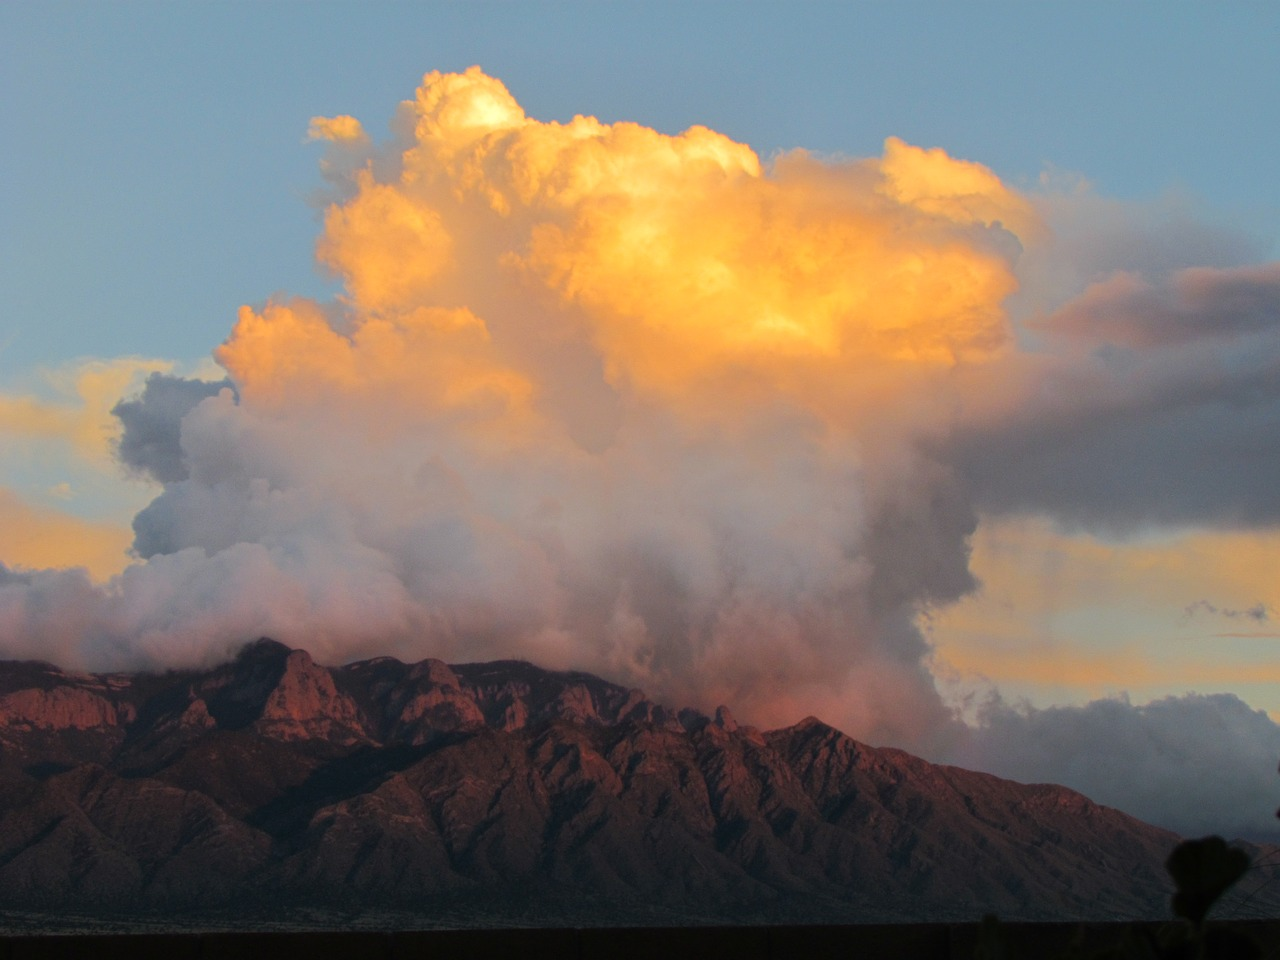 Clouds rolling over the Sandia Mountains.